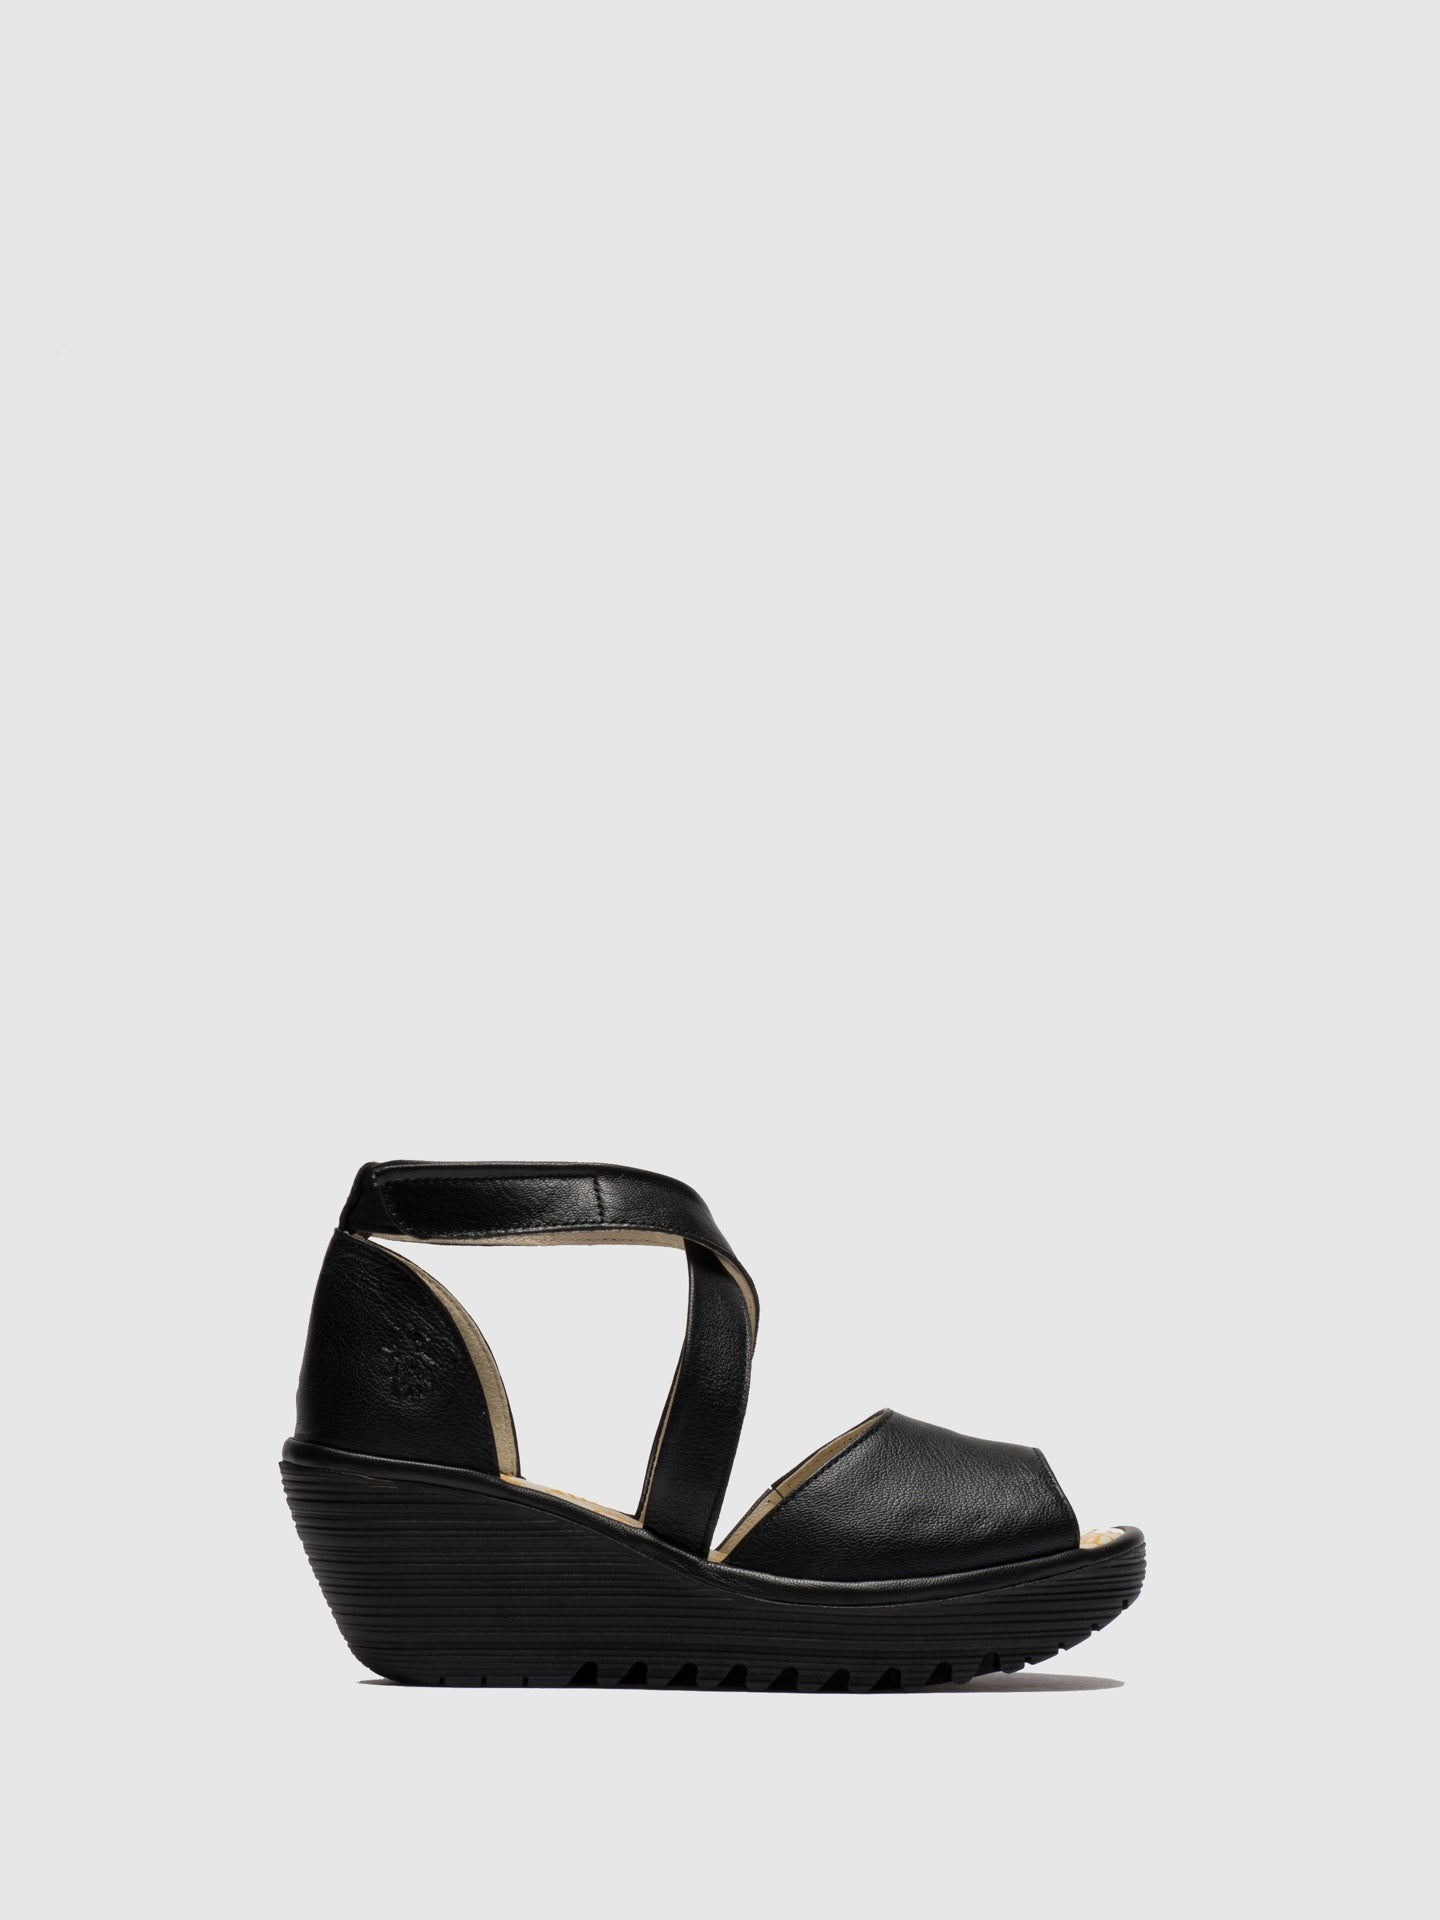 Fly London Black Open Toe Sandals